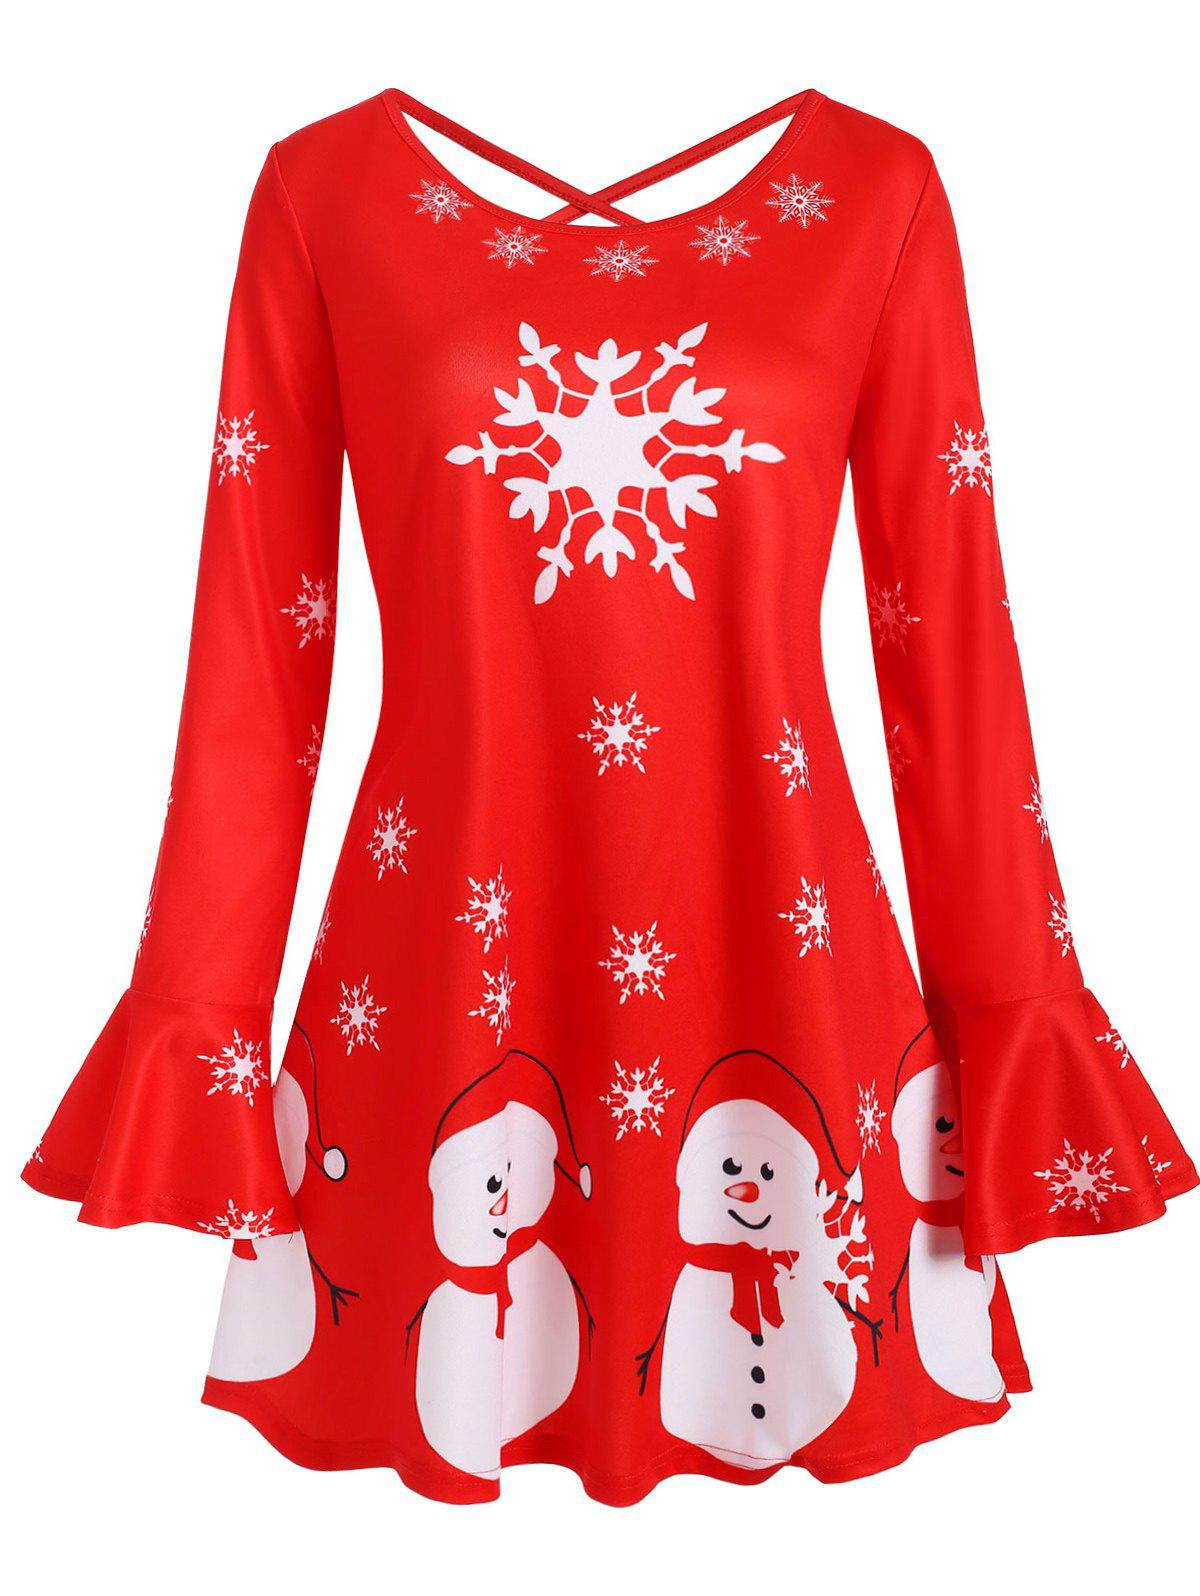 Snowman Snowflake Print Christmas Criss Cross Flare Sleeve Plus Size Top - RED 4X